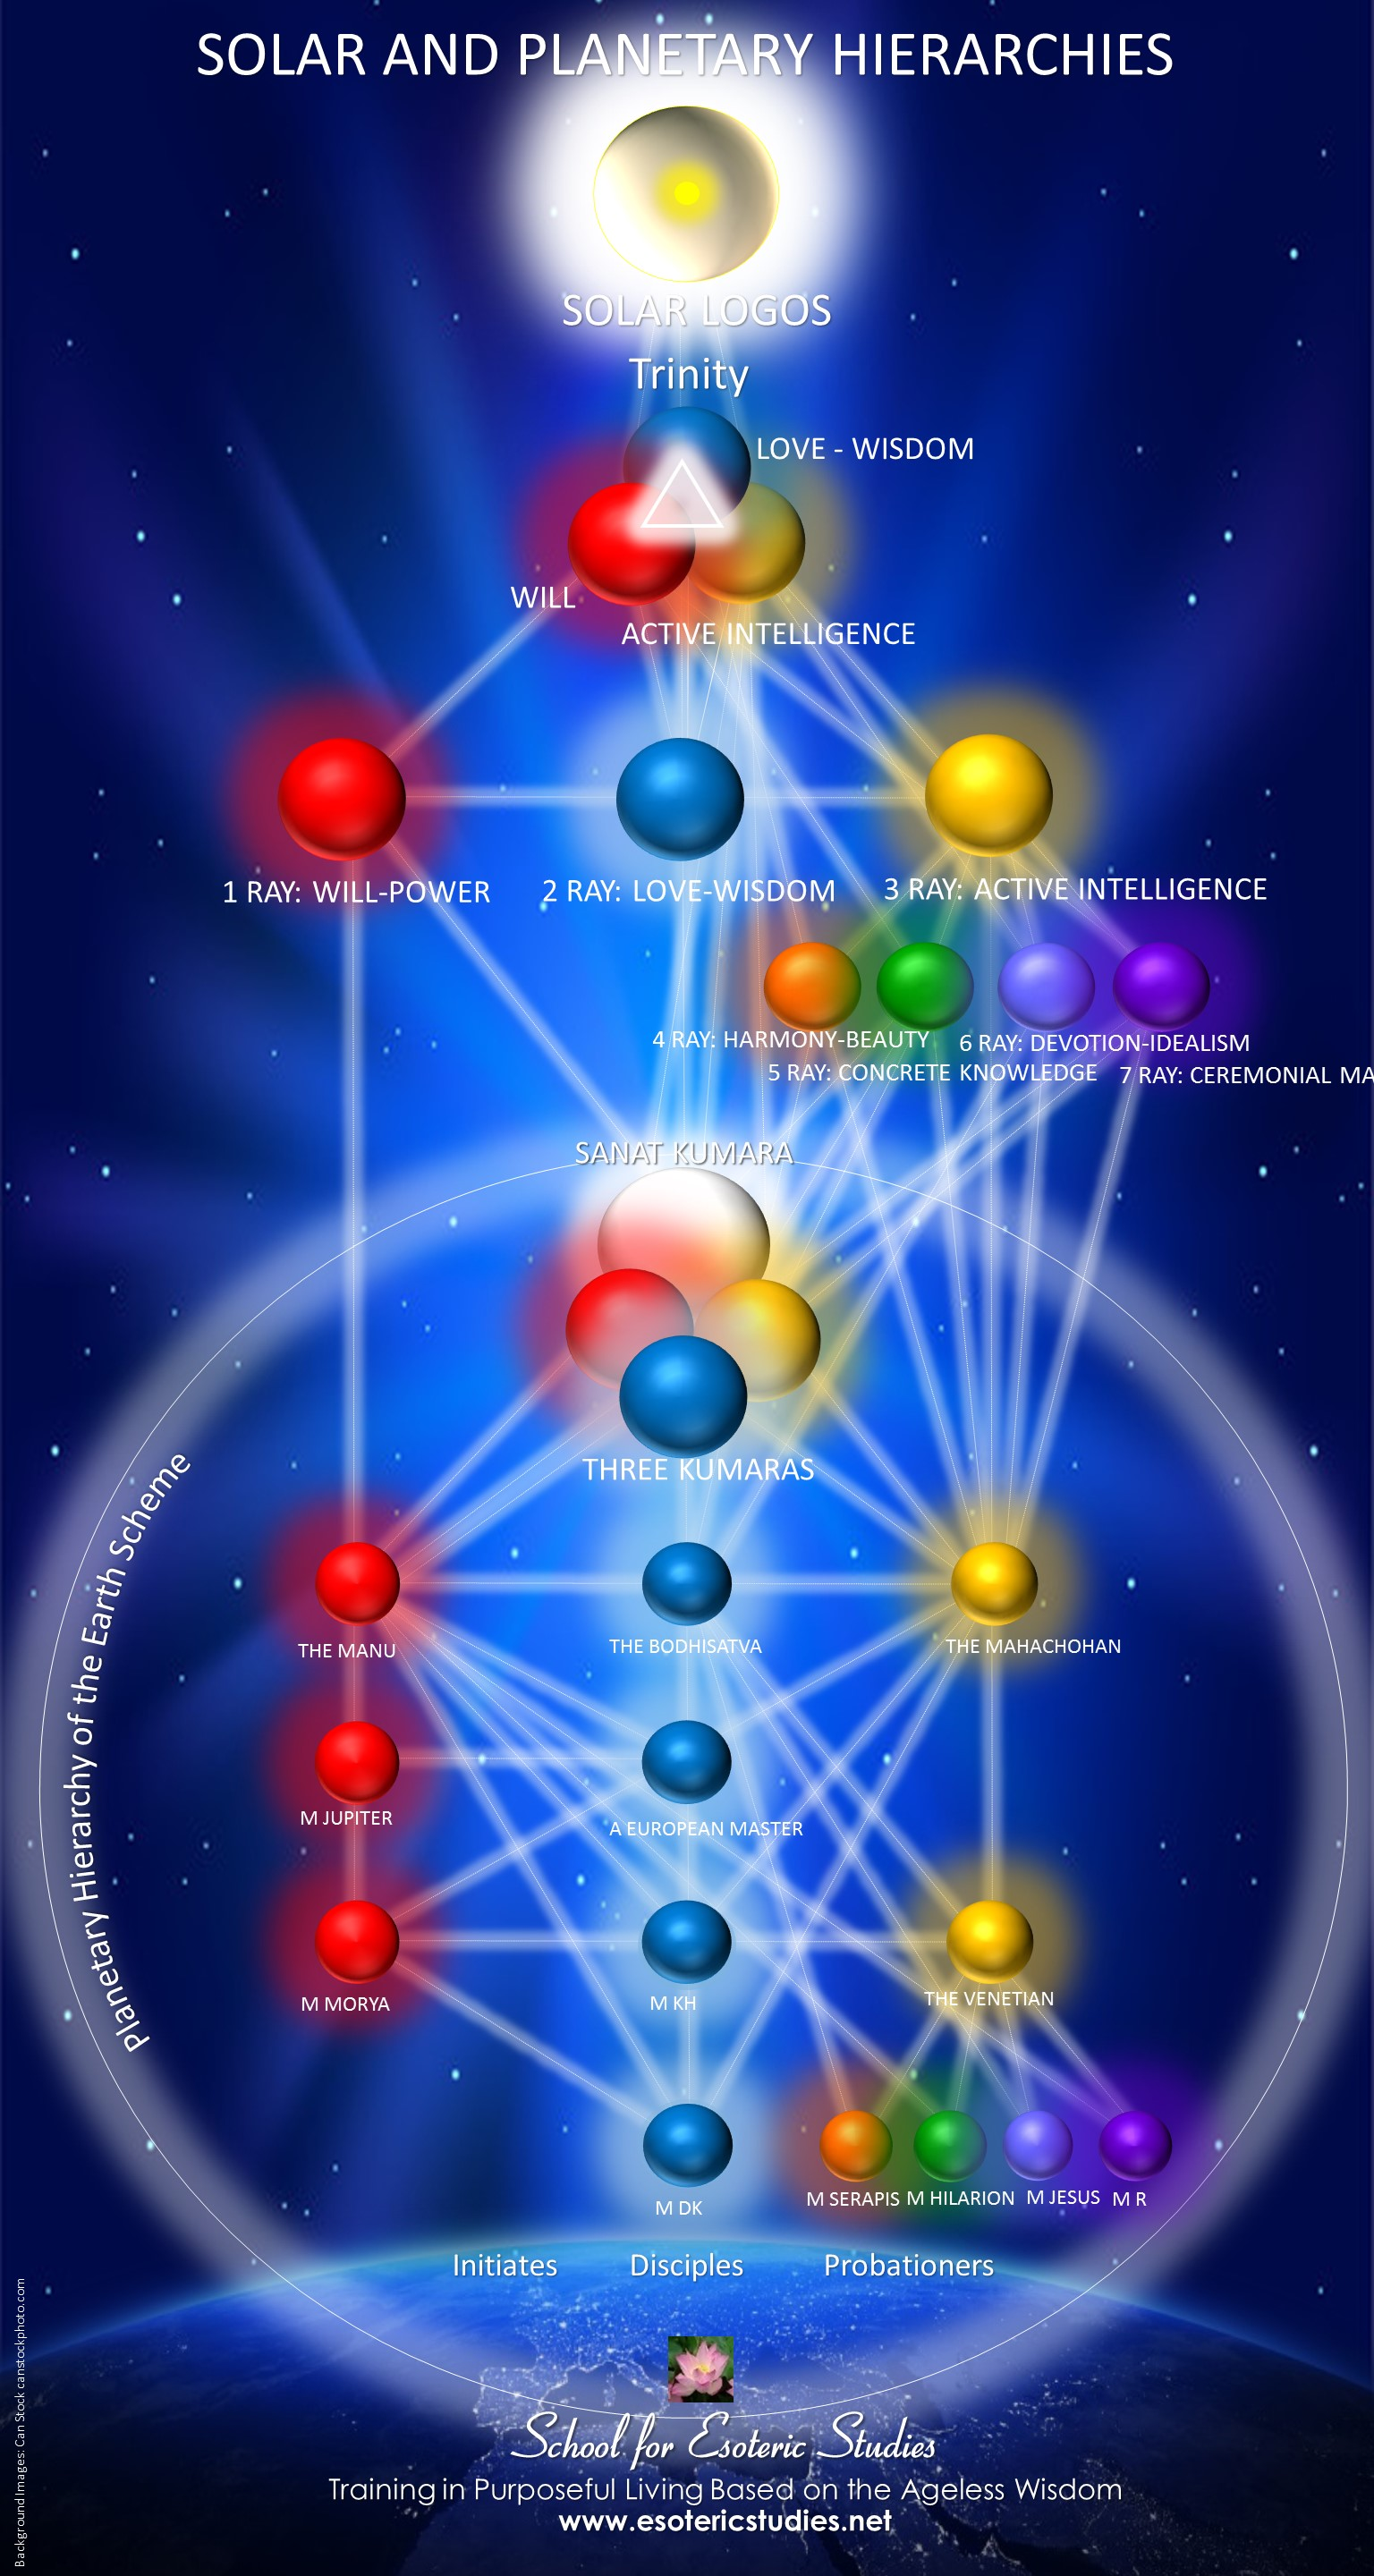 Chart of the solar and planetary hierarchies